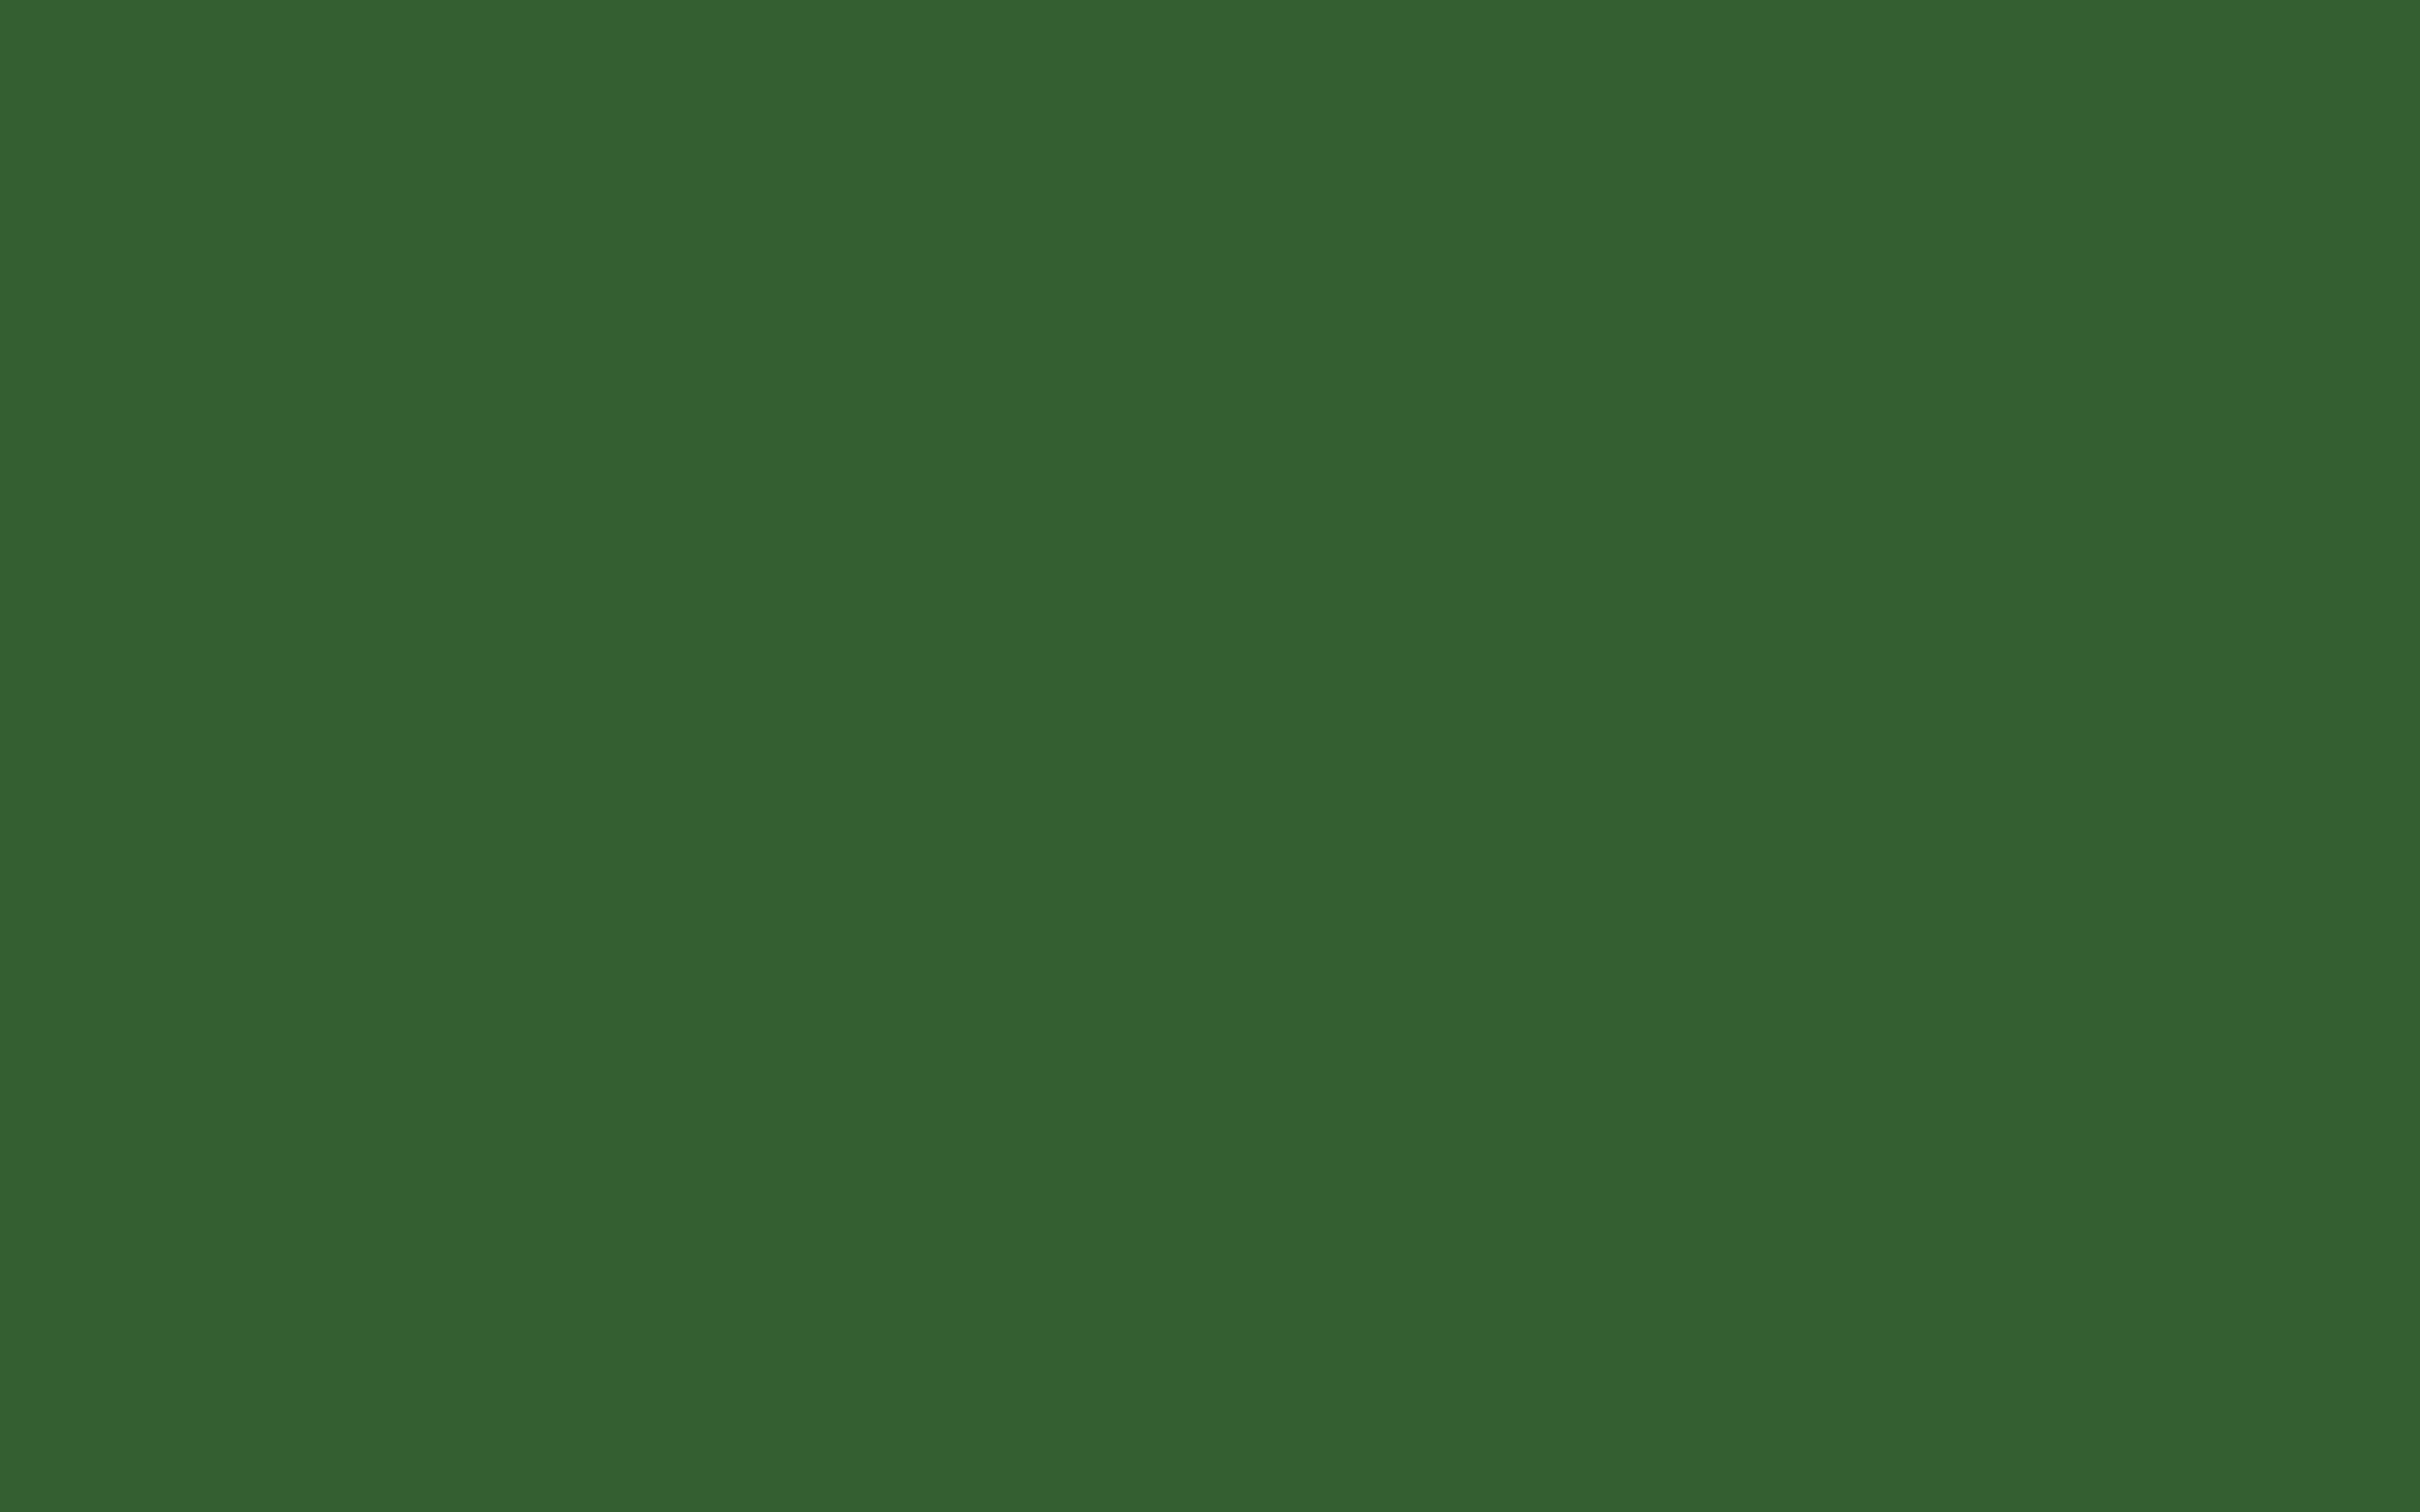 2560x1600 Mughal Green Solid Color Background